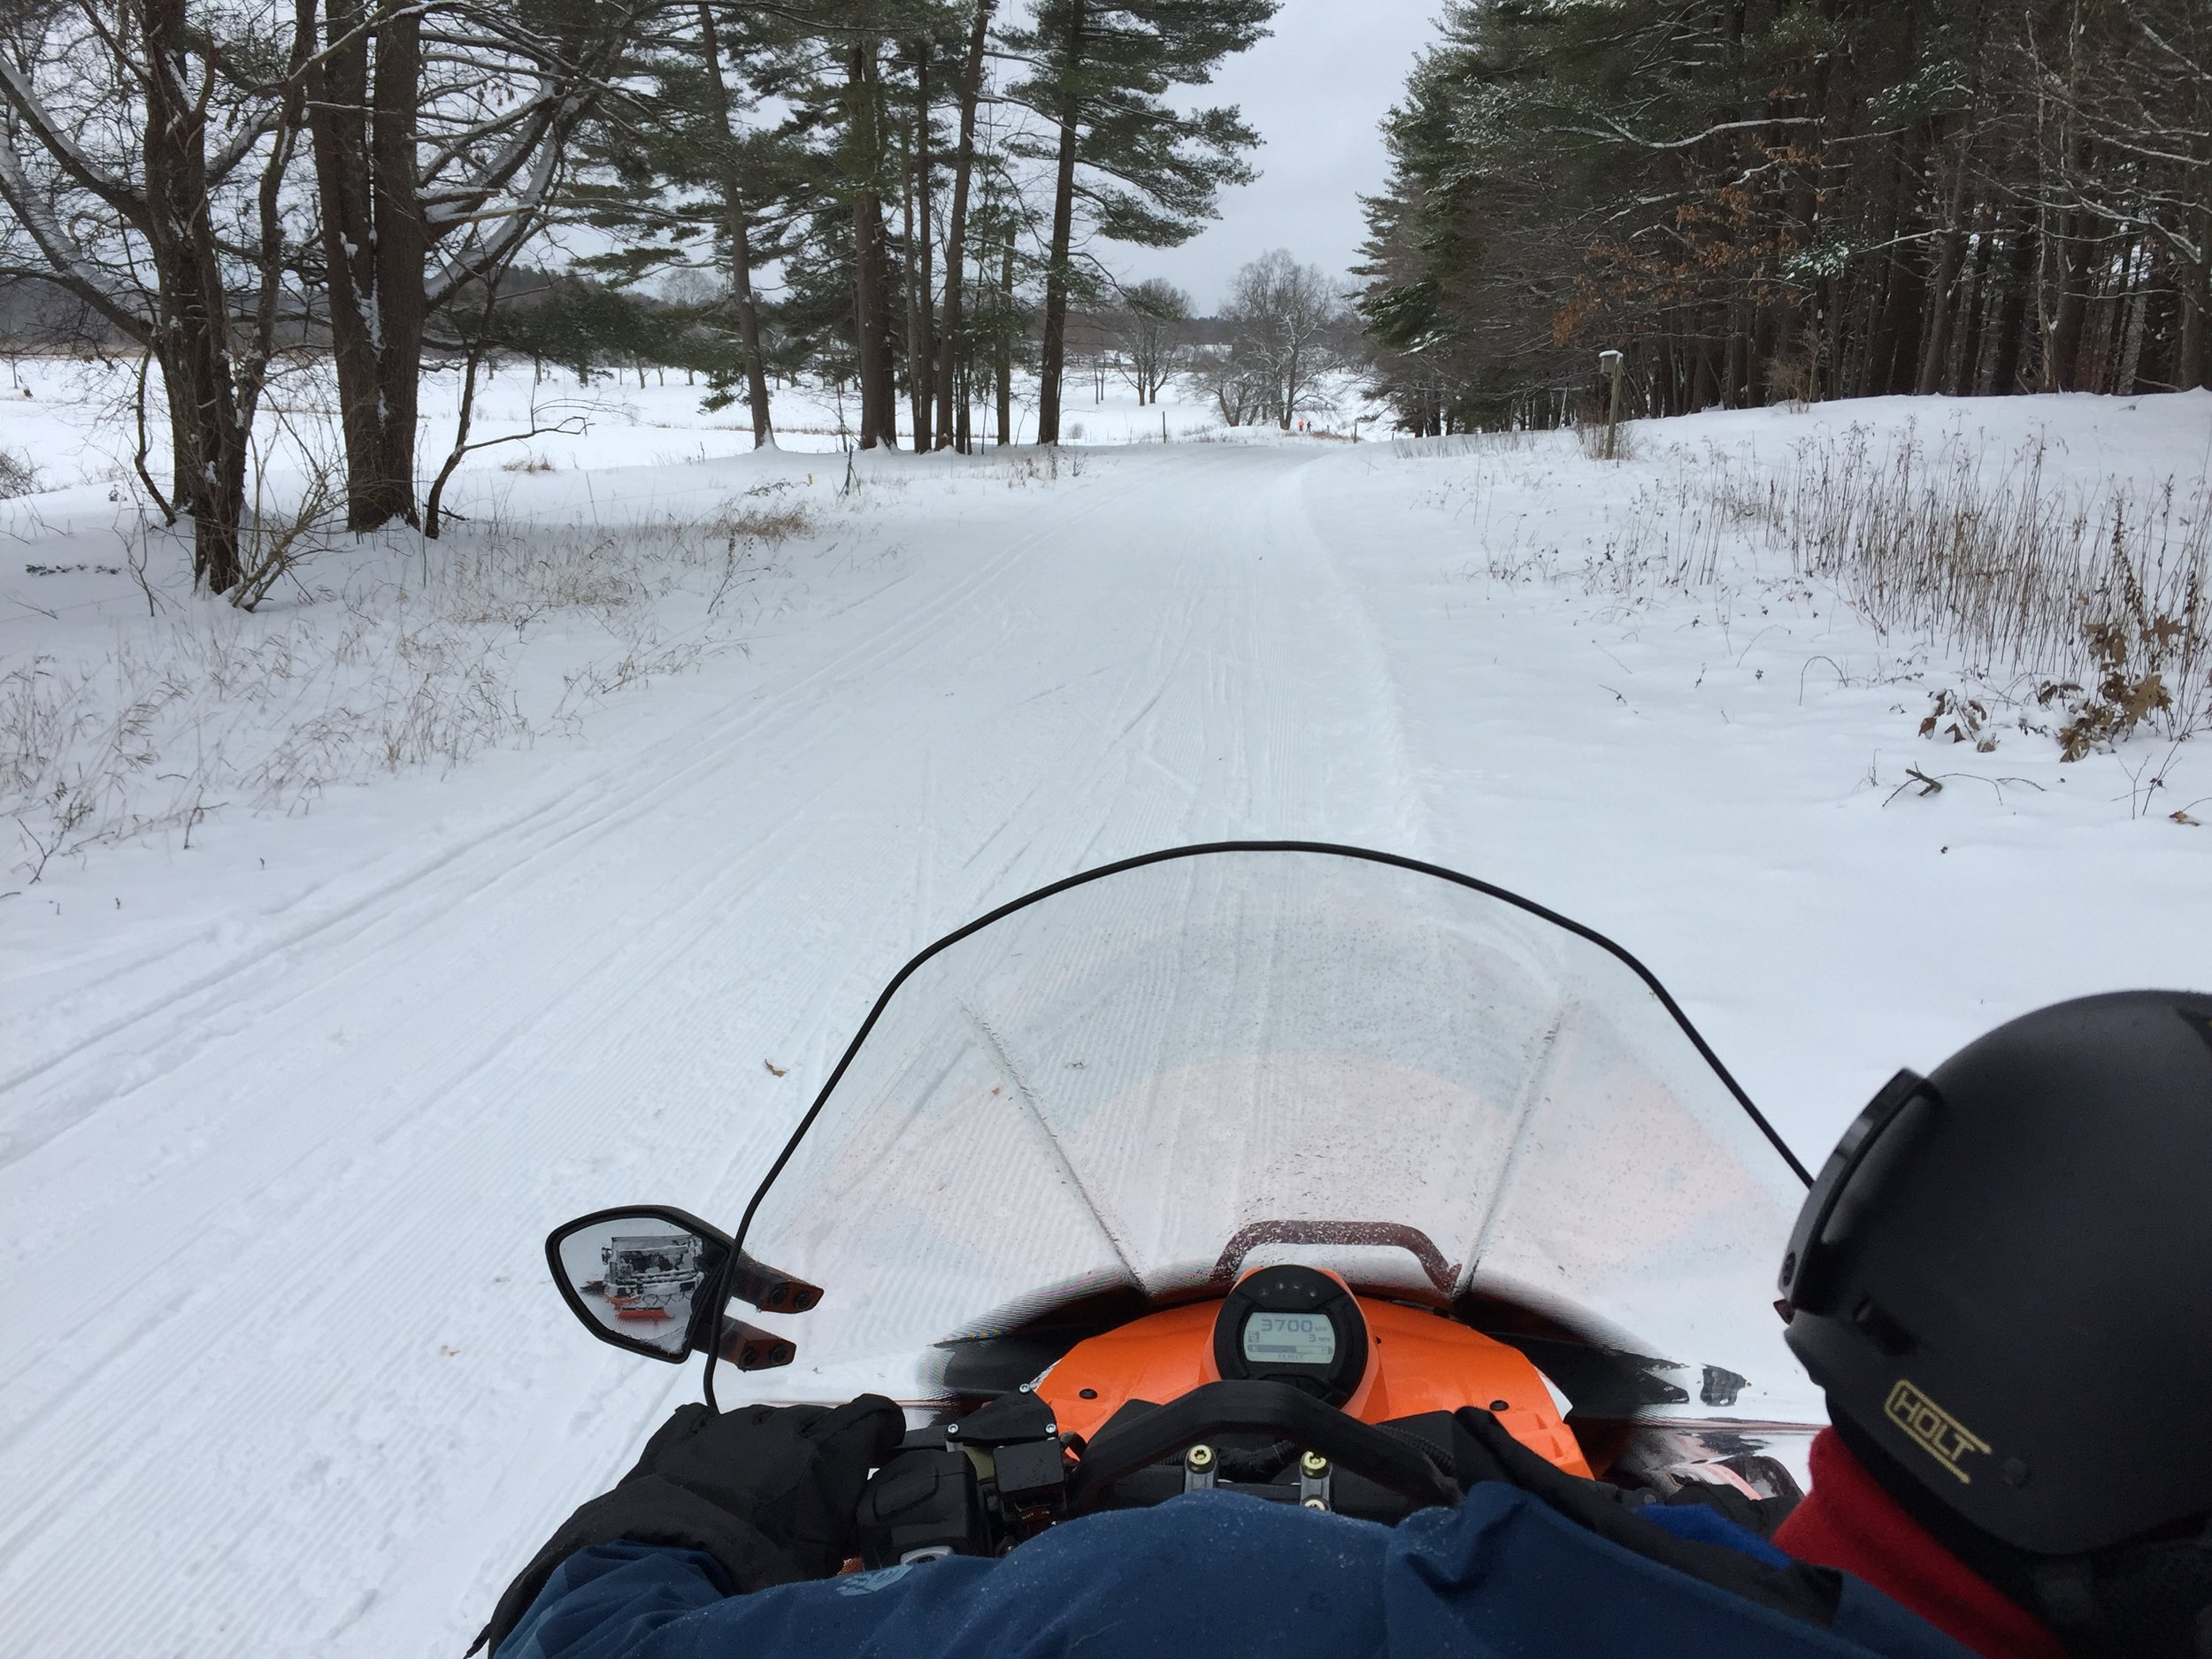 A view from the sled today while grooming at Appleton